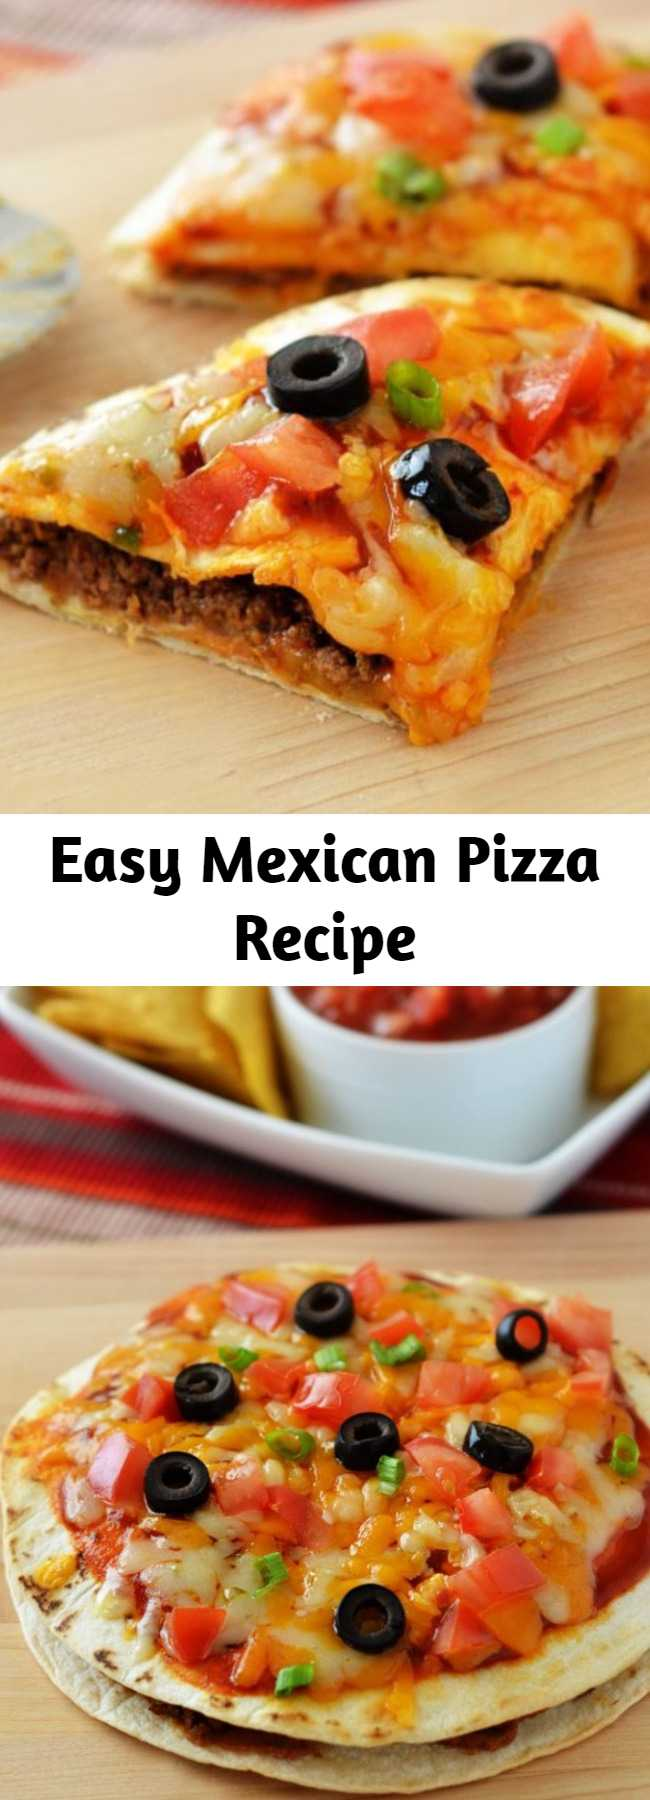 Easy Mexican Pizza Recipe - Mexican Pizza is filled with seasoned ground beef, beans, cheese and enchilada sauce stuffed between two golden flour tortillas. These are a delicious twist on traditional pizza! These will be a hit with the whole family!